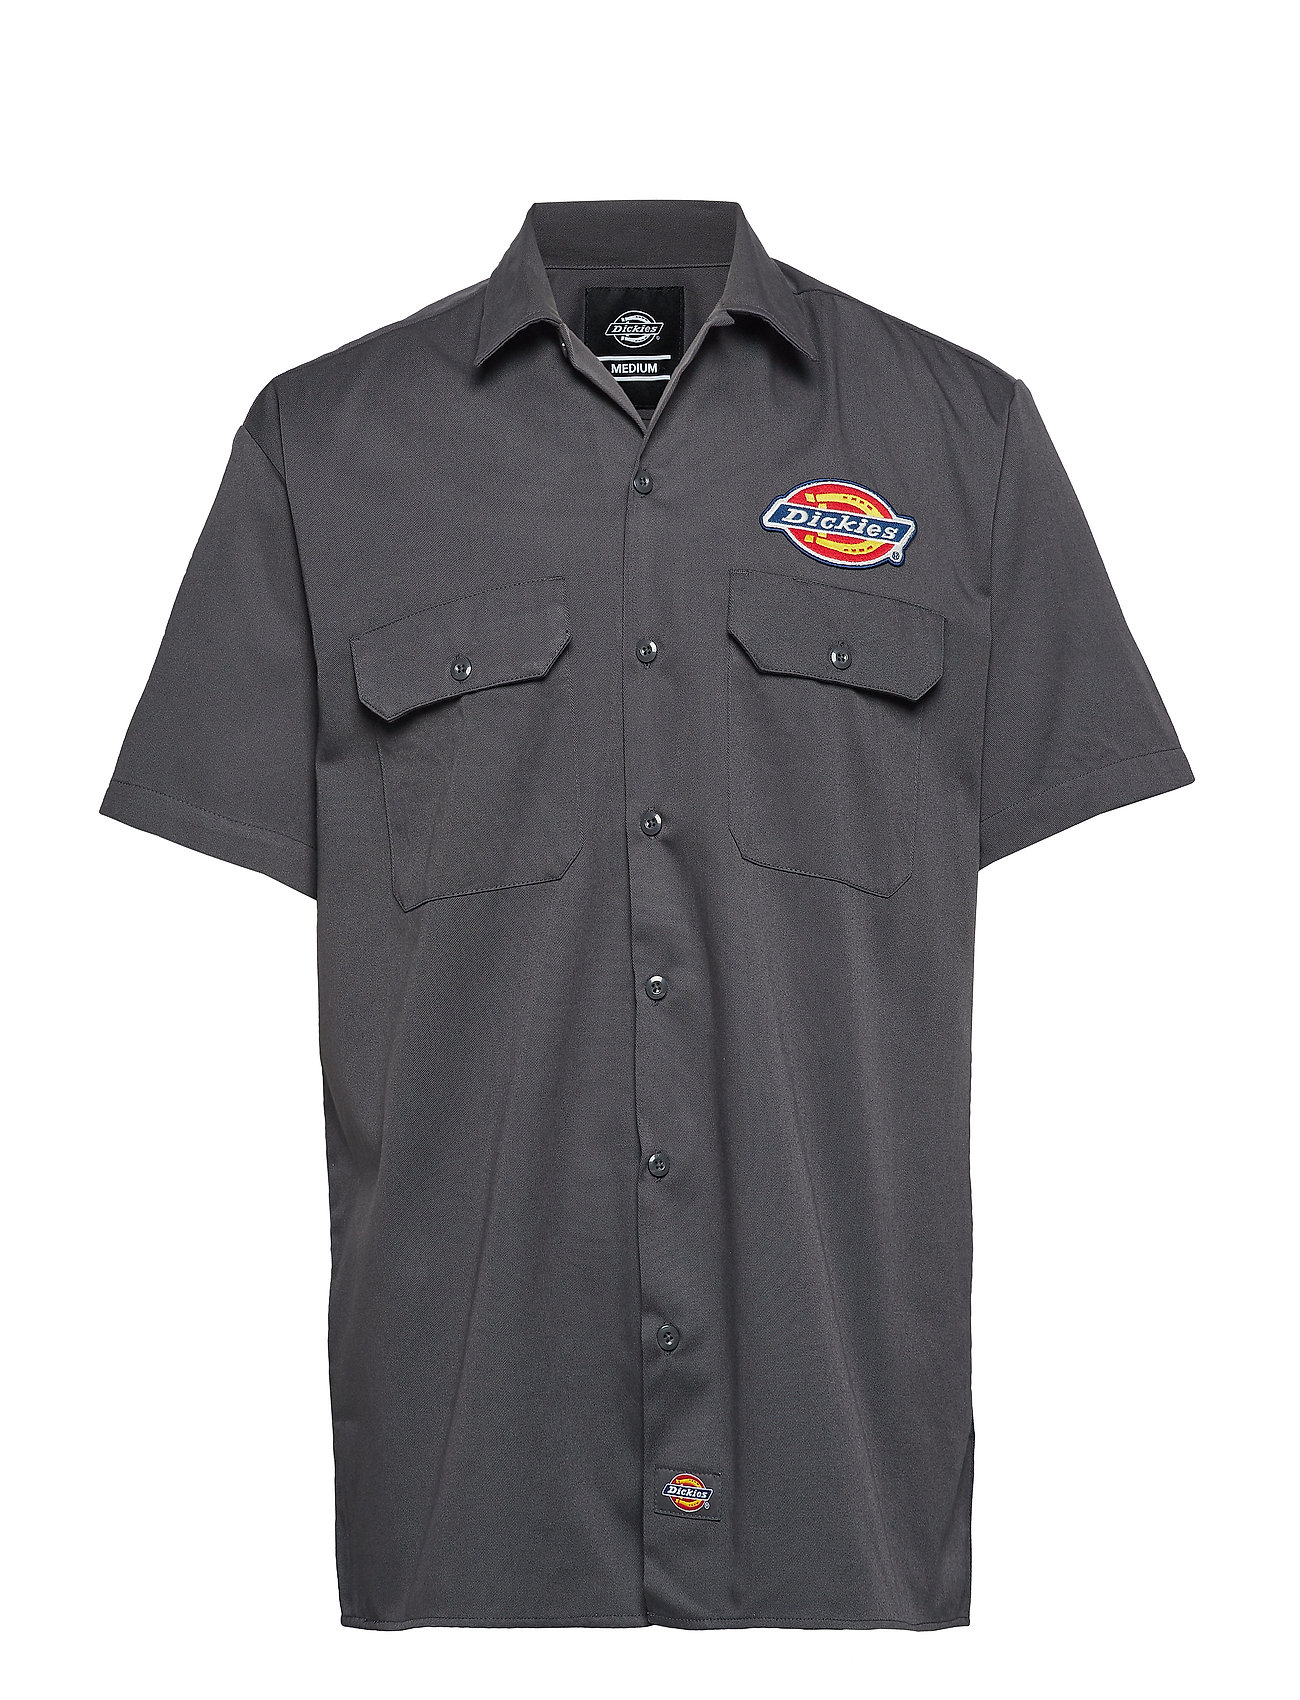 Dickies Clintondale - CHARCOAL GREY